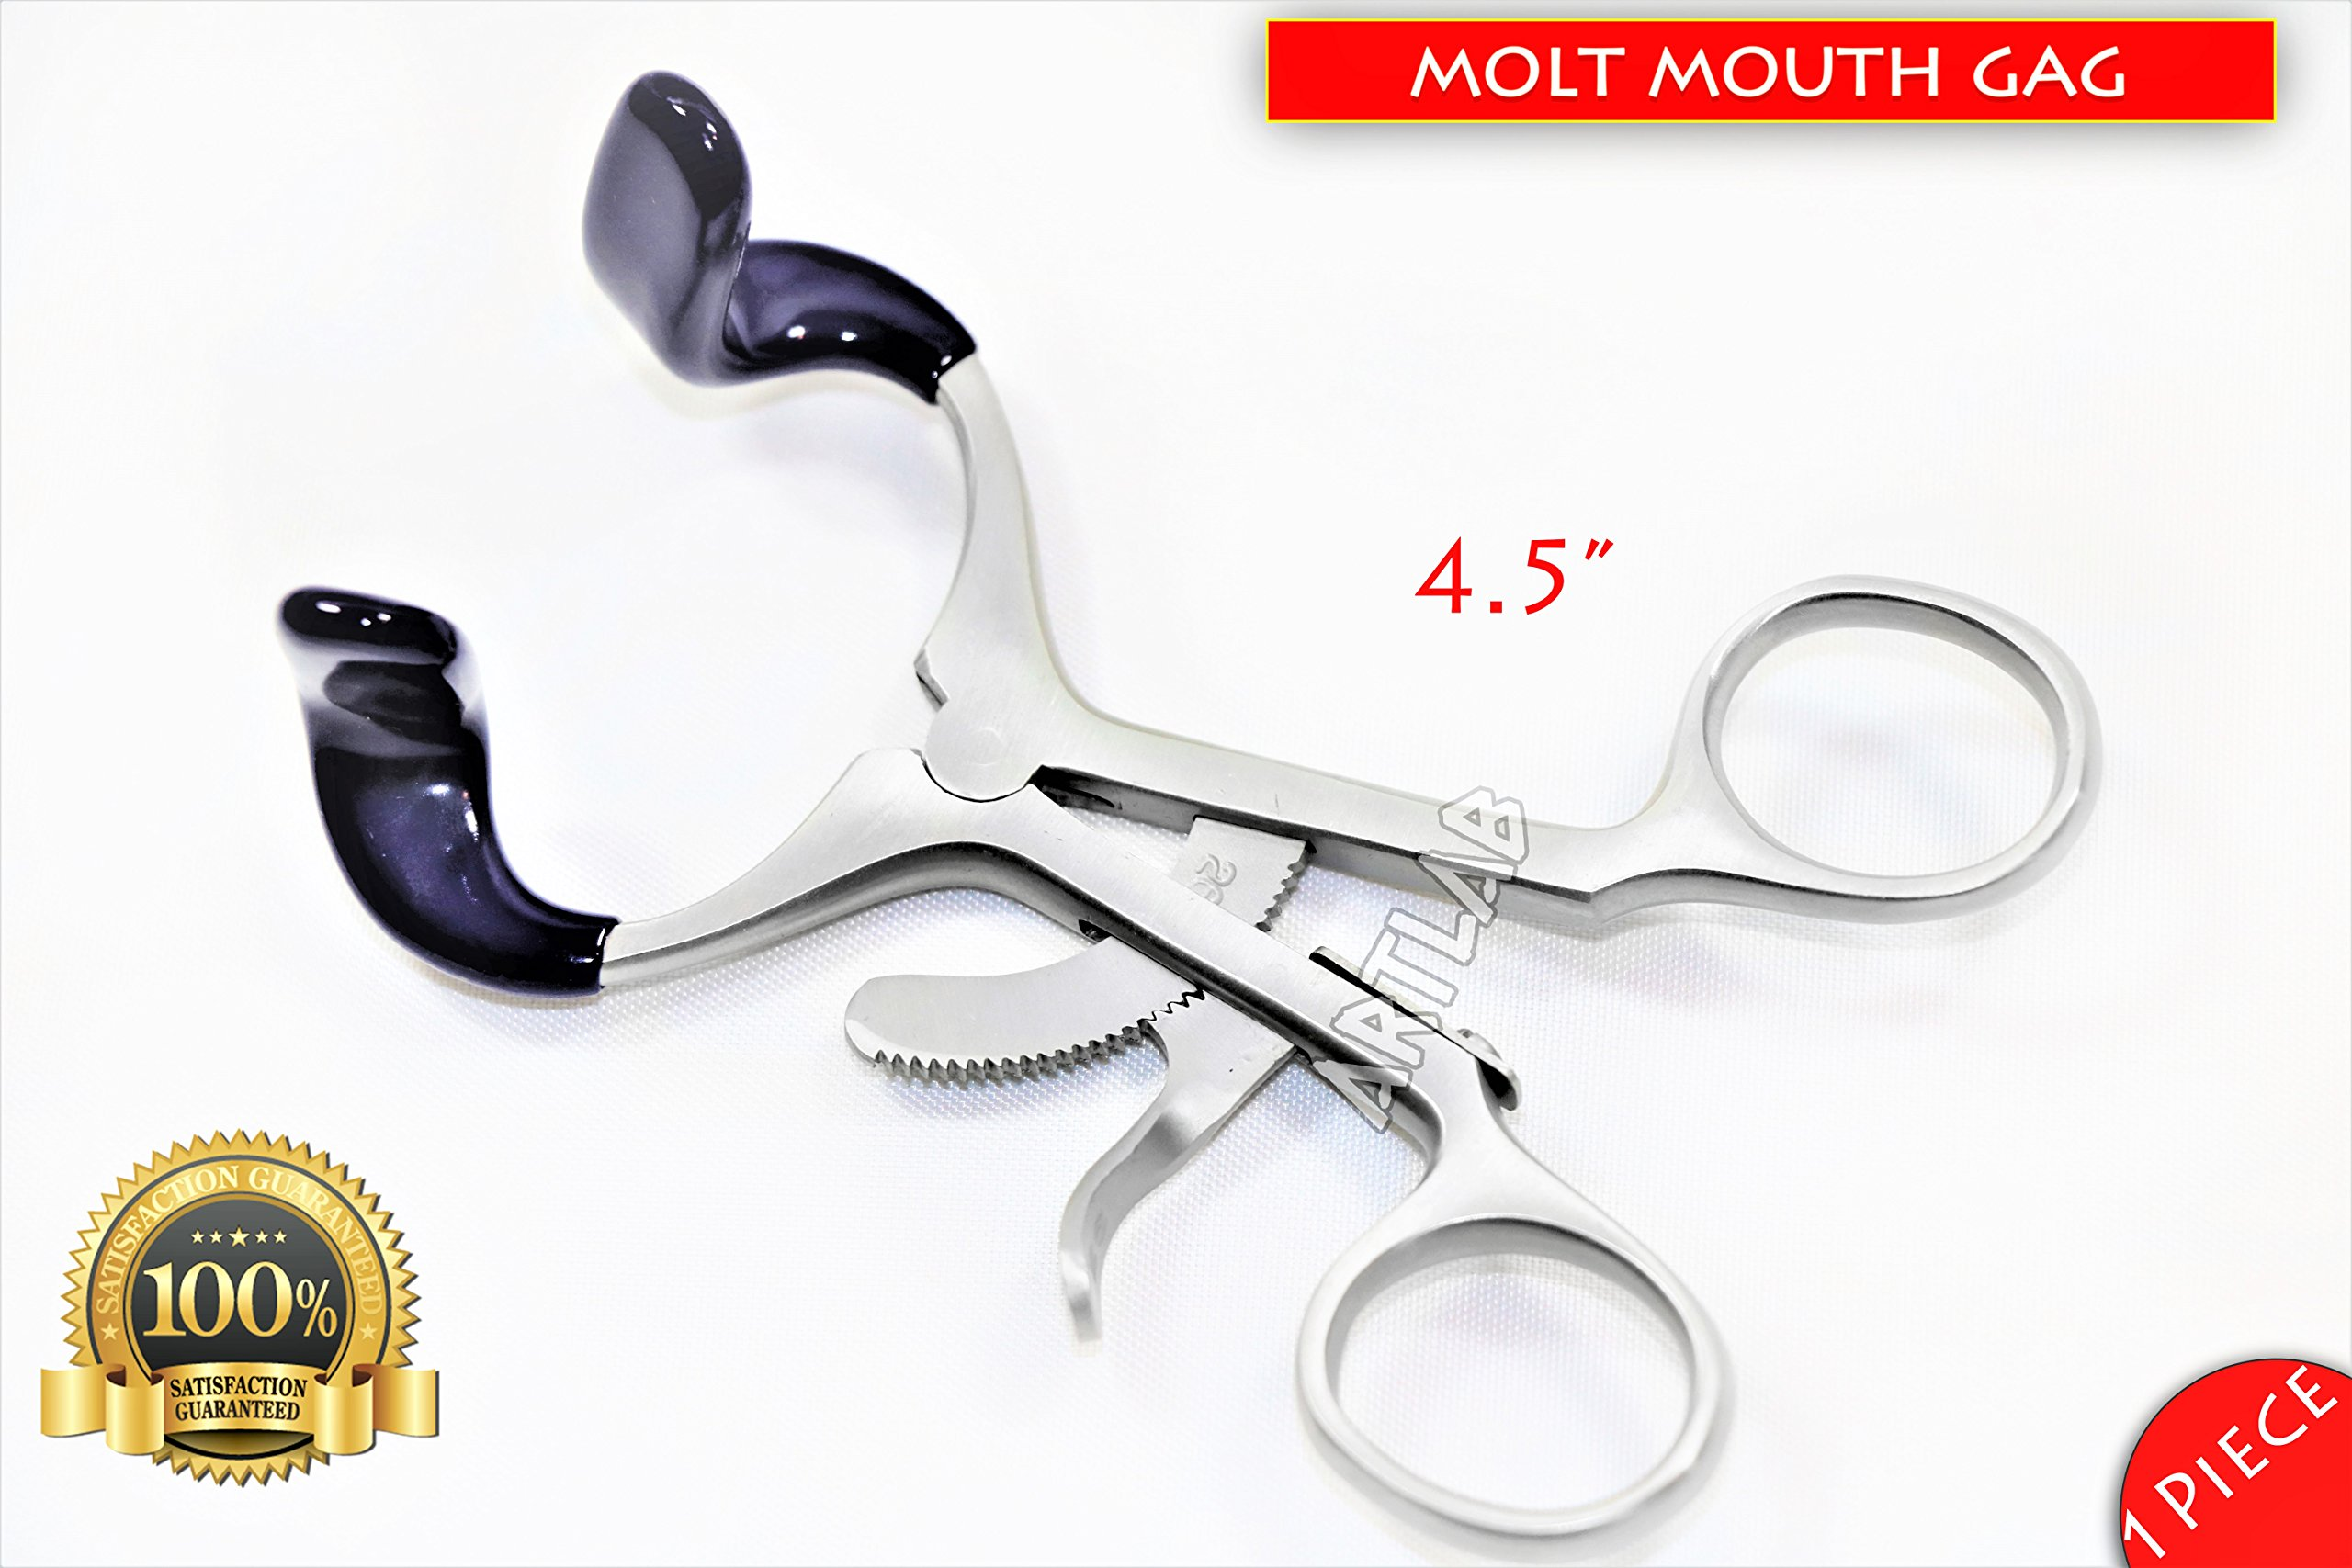 Surgical Dental Mouth Gag Molt 4.5'' Dental Oral Instruments 1pc New! (CYNAMED)